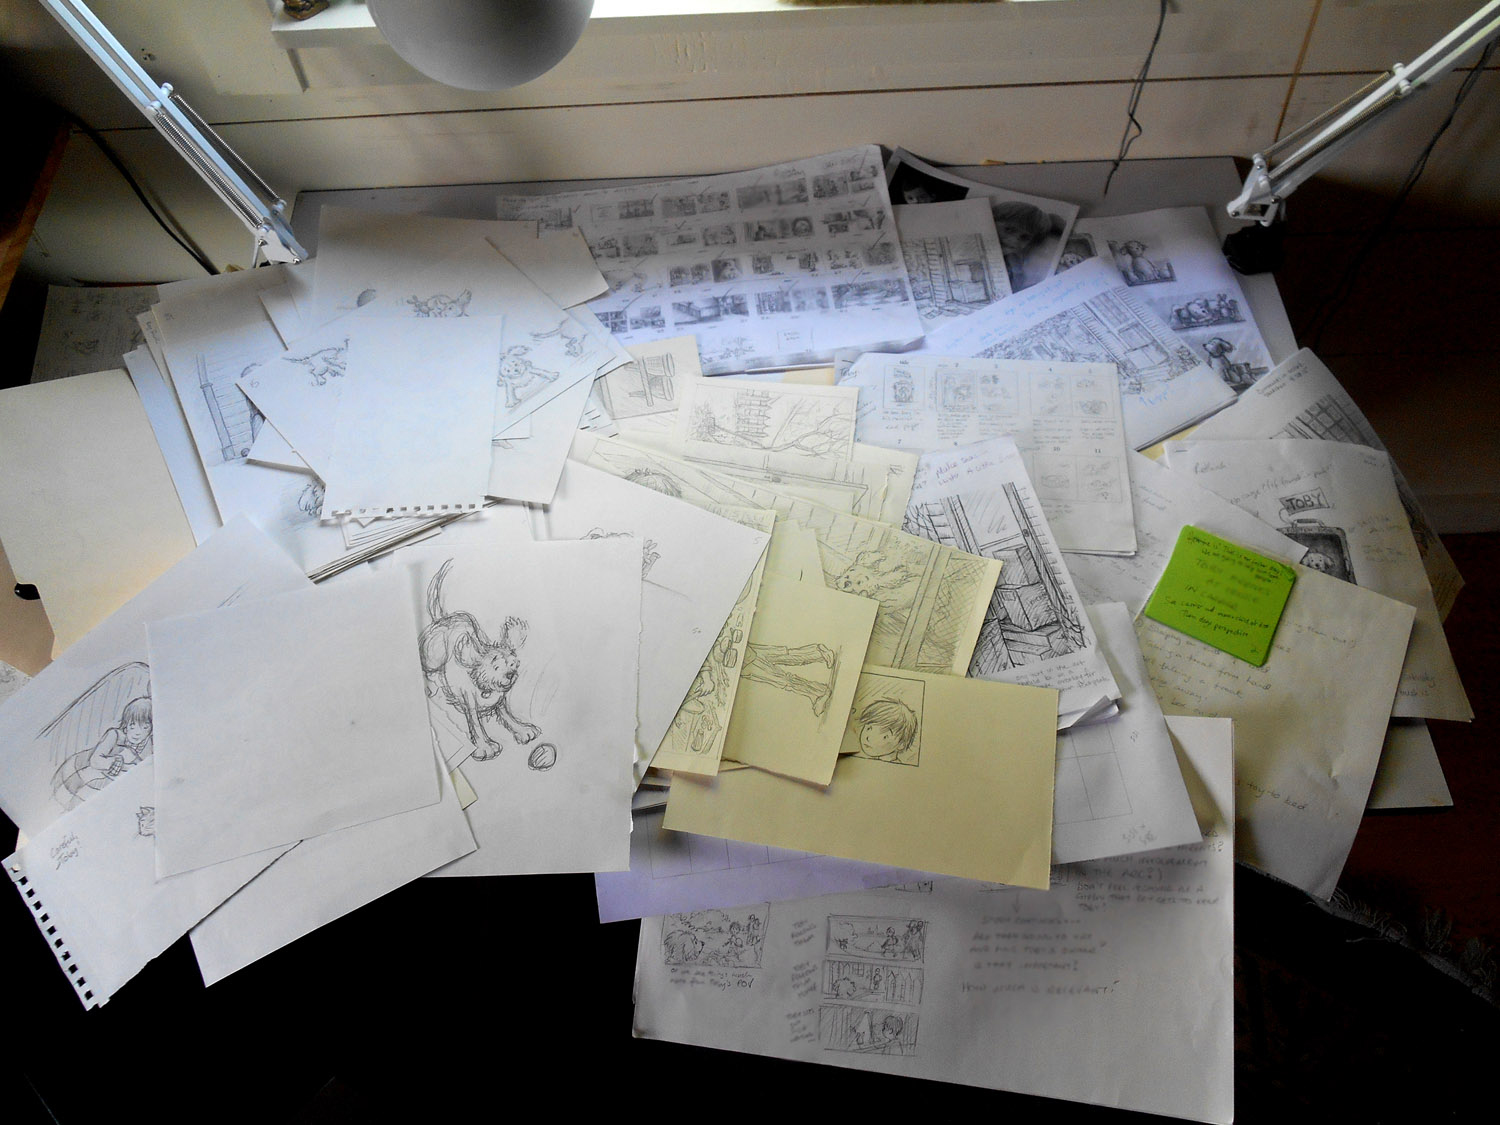 A lot of drawings